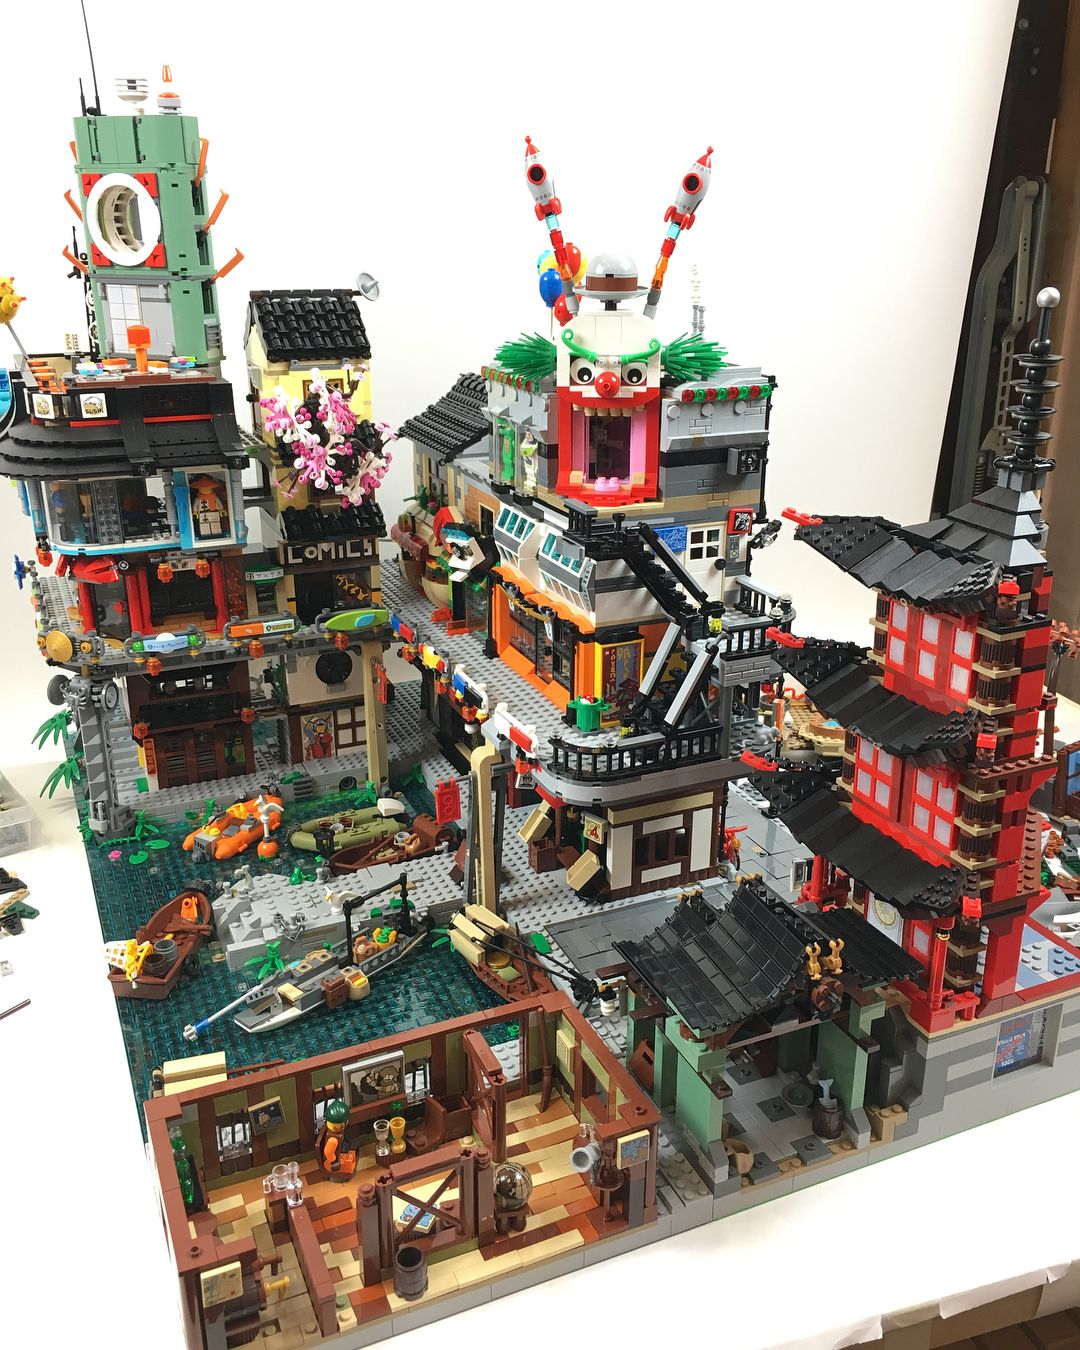 Pin By Johnny Yuen On Custom Toys Lego Cool Lego Creations Cool Lego